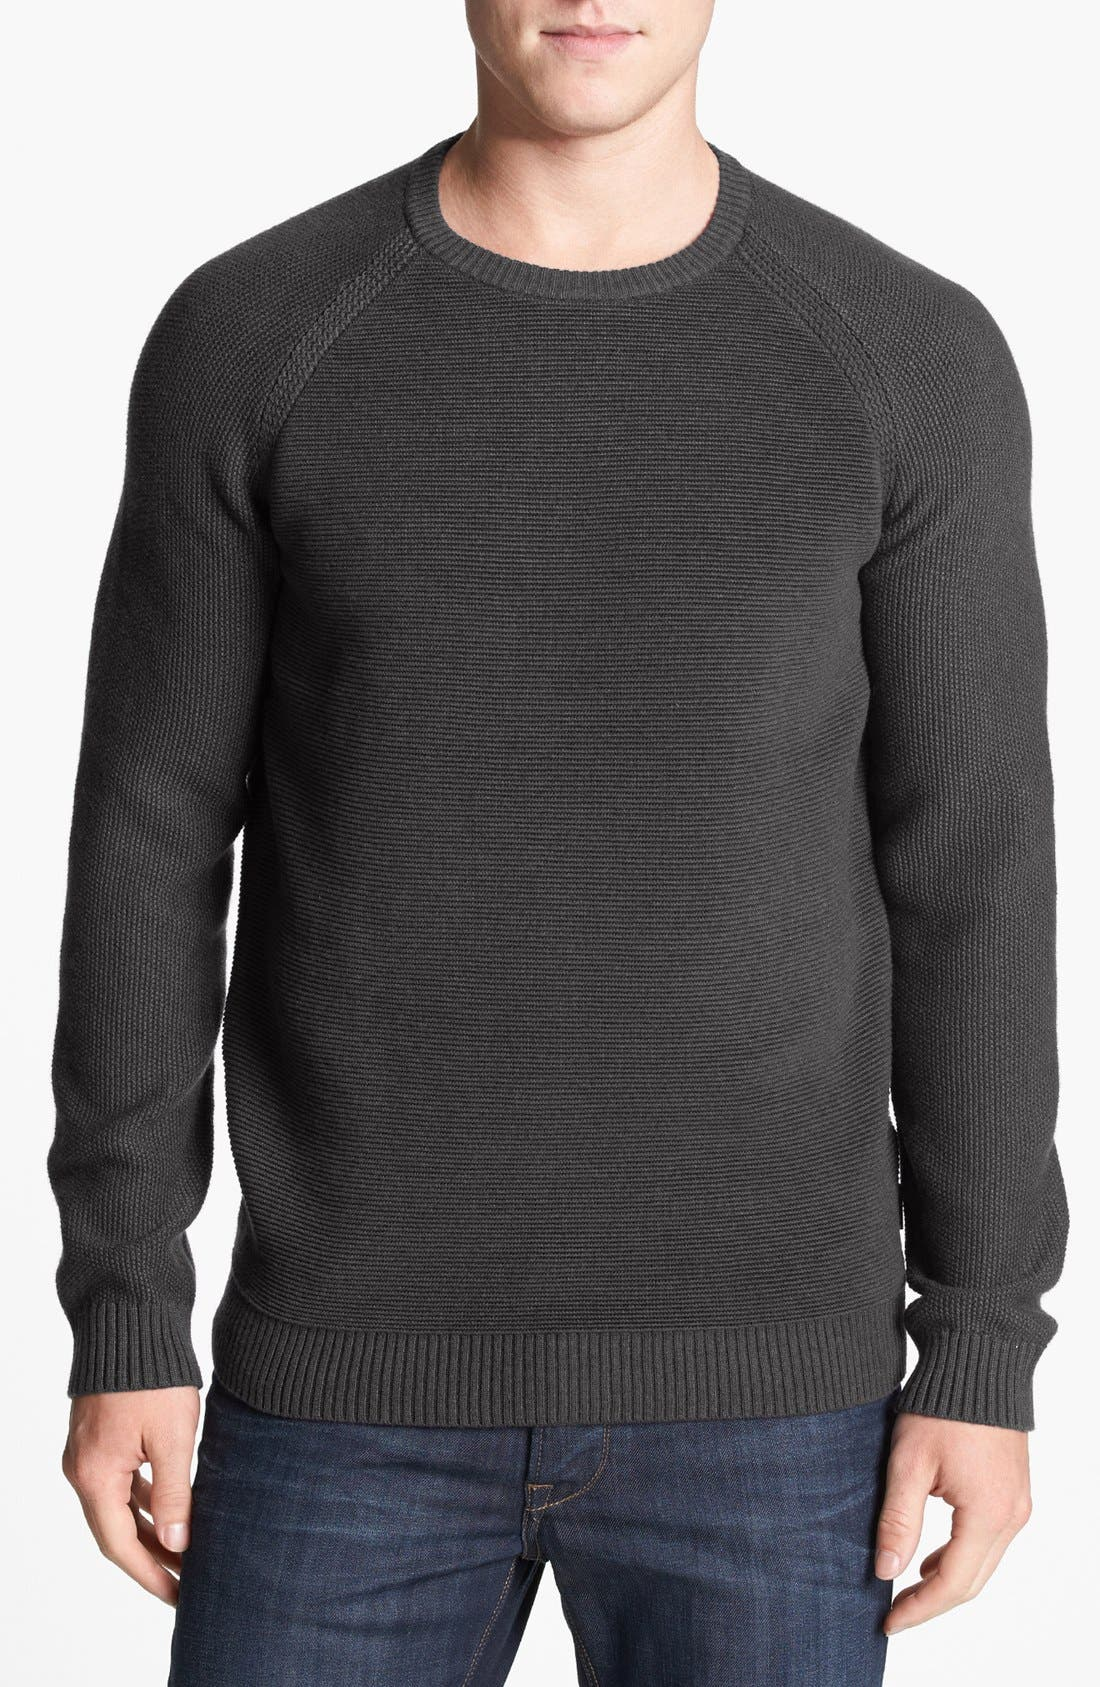 Alternate Image 1 Selected - Ted Baker London 'Malvern' Crewneck Sweater